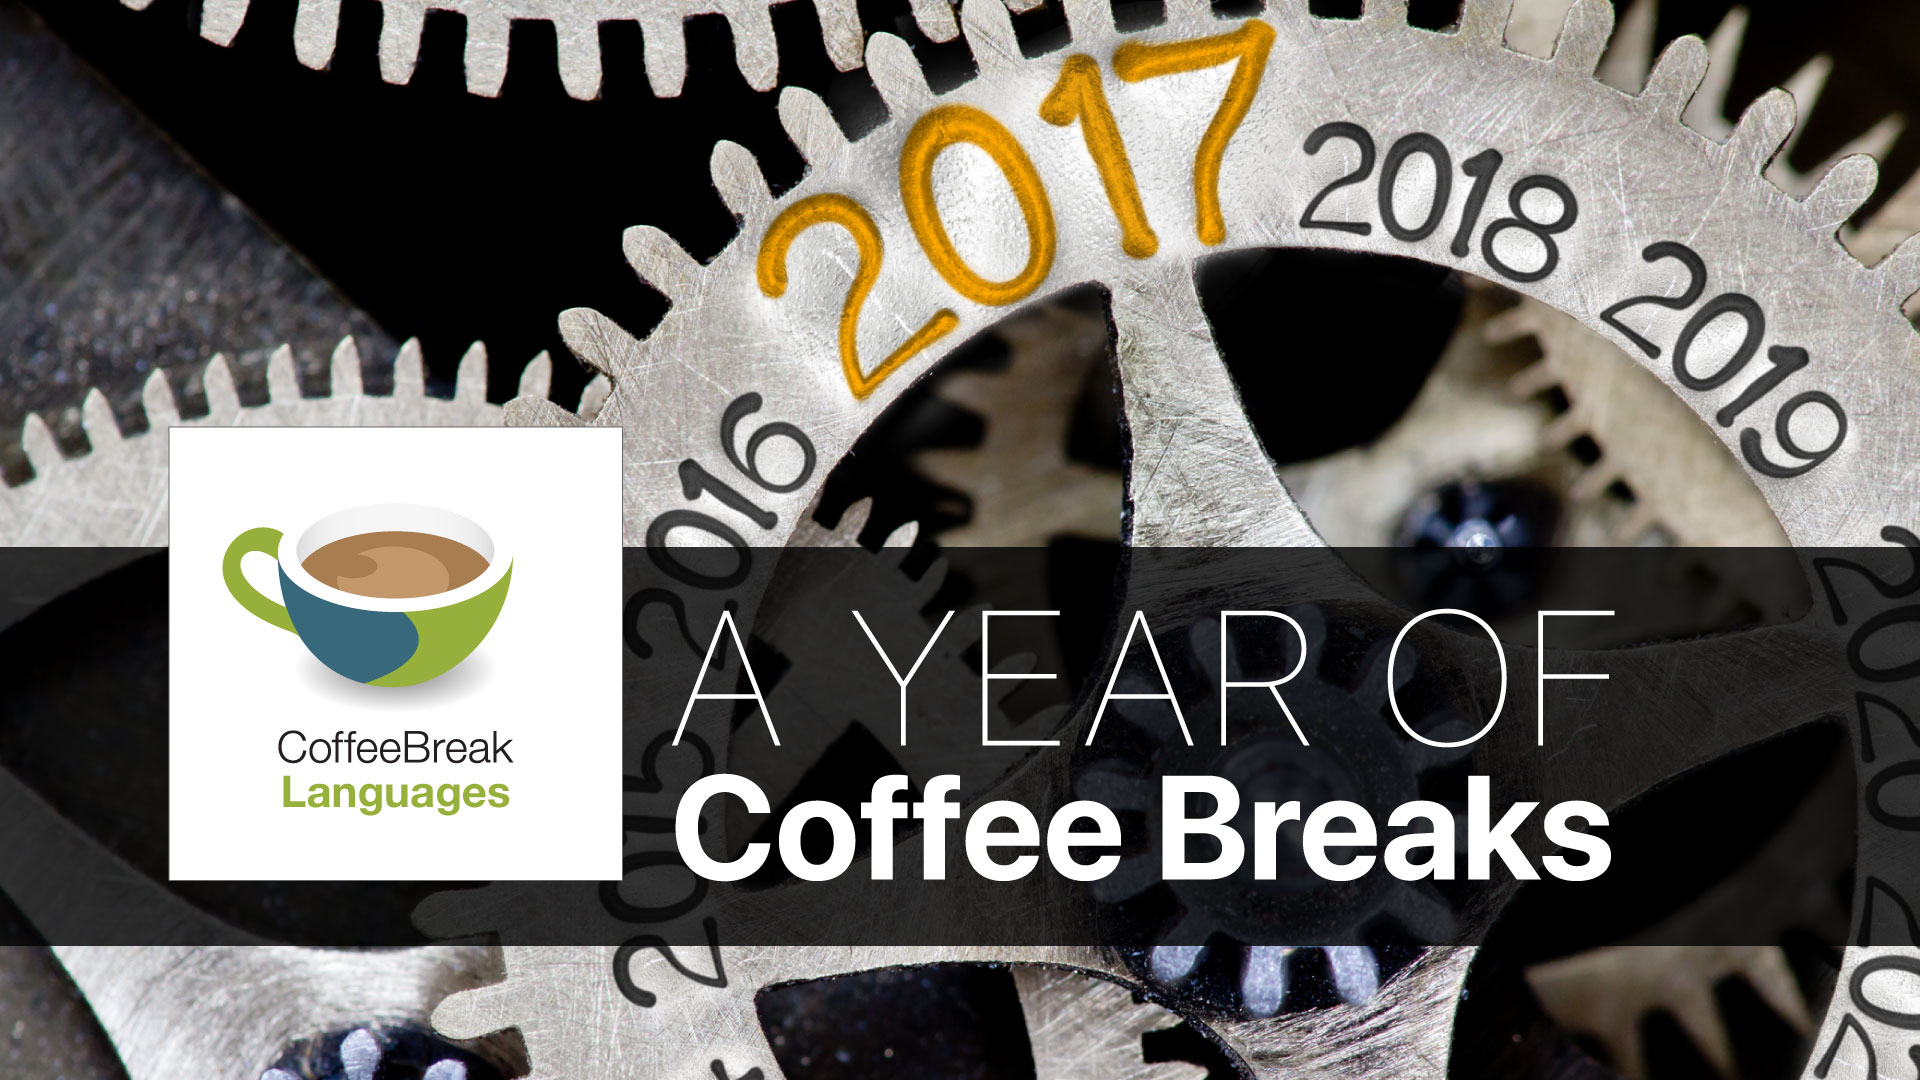 Looking back over the past year at Coffee Break Languages ...